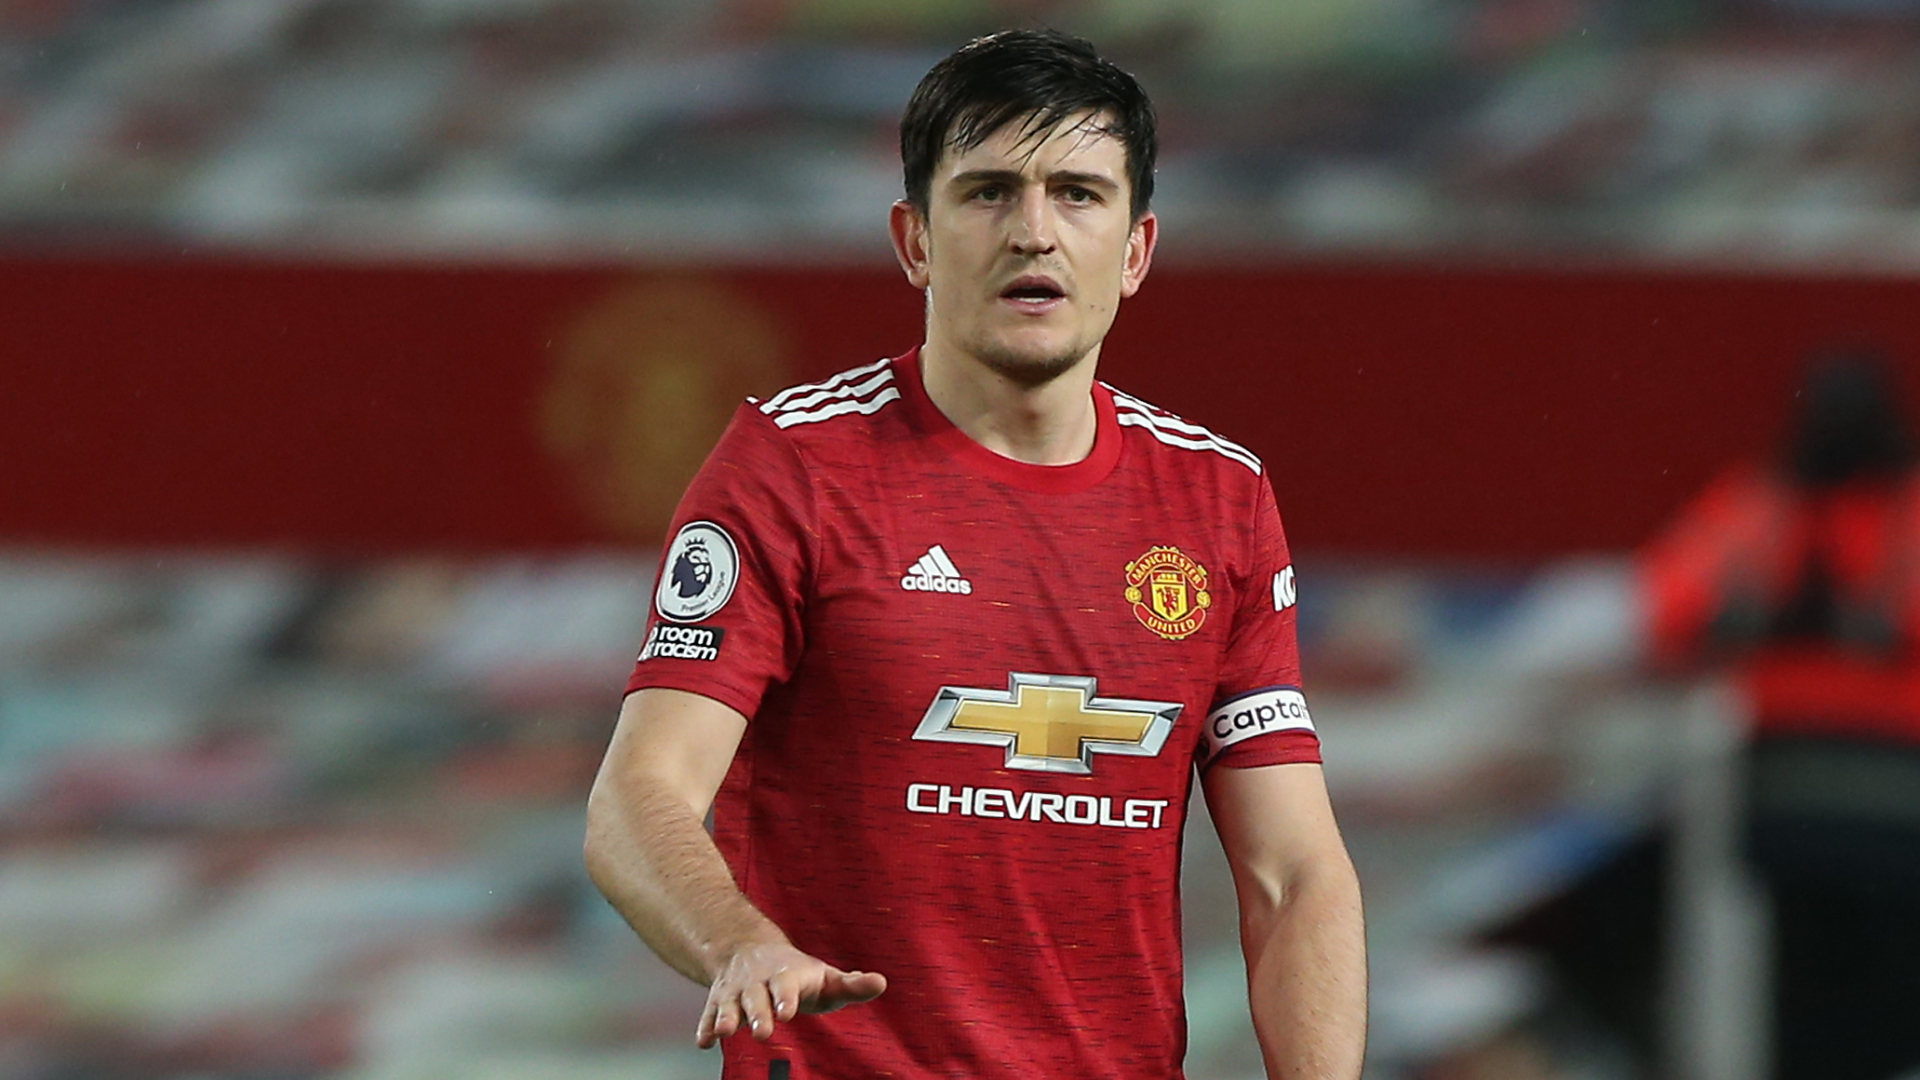 Maguire determined to spoil Tuchel's 'great' Chelsea start